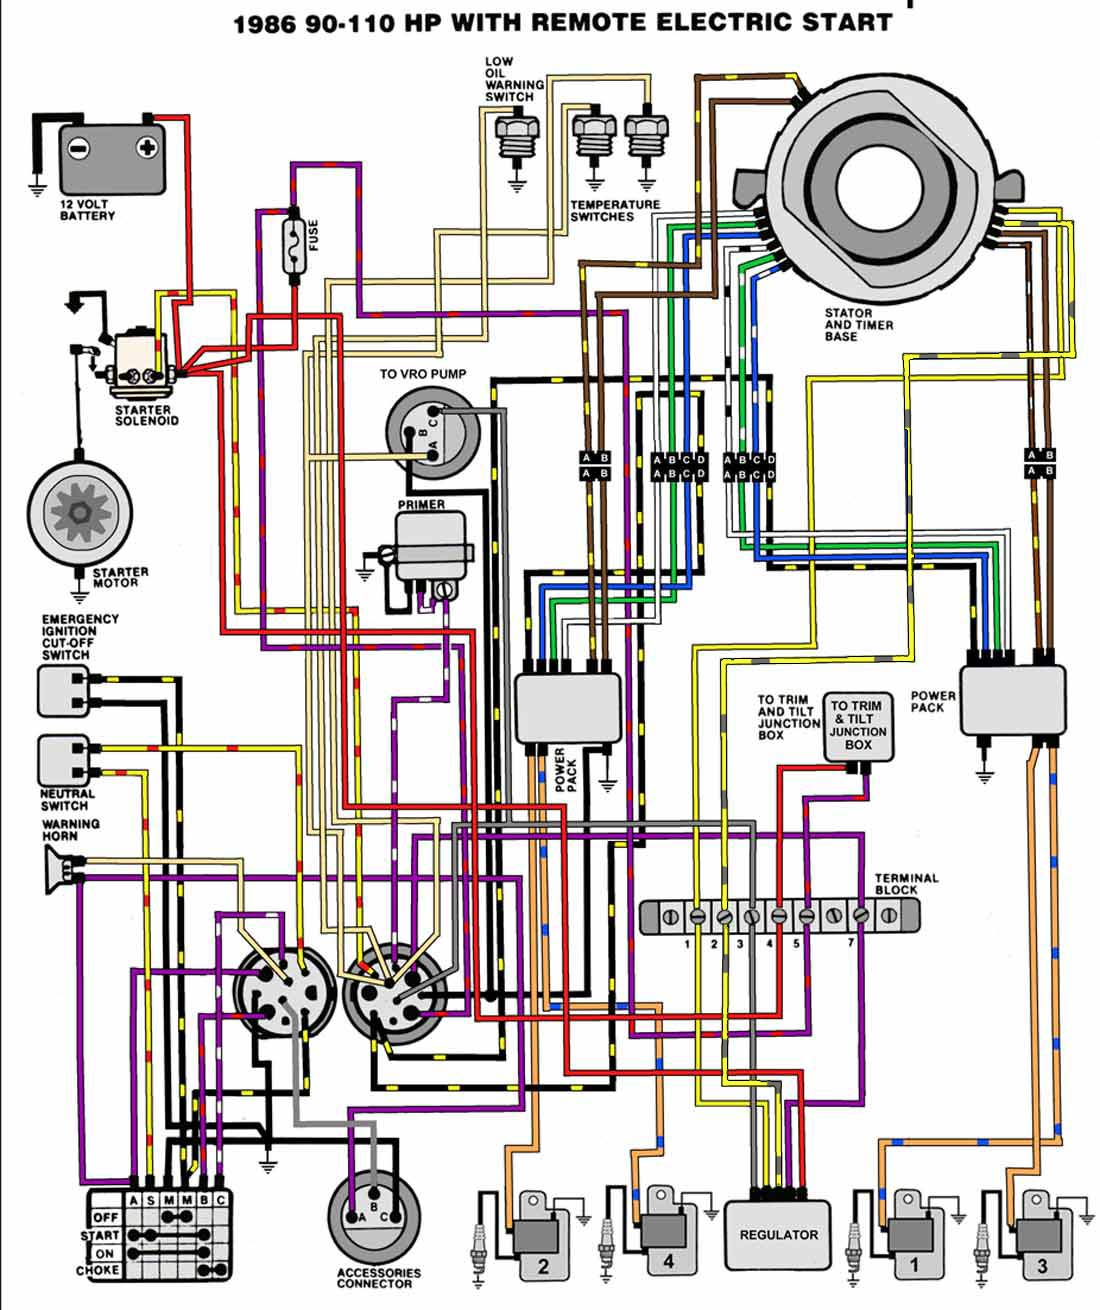 evinrude wiring diagrams evinrude ignition wiring diagram wiring diagrams and schematics mastertech marine evinrude johnson outboard wiring diagrams